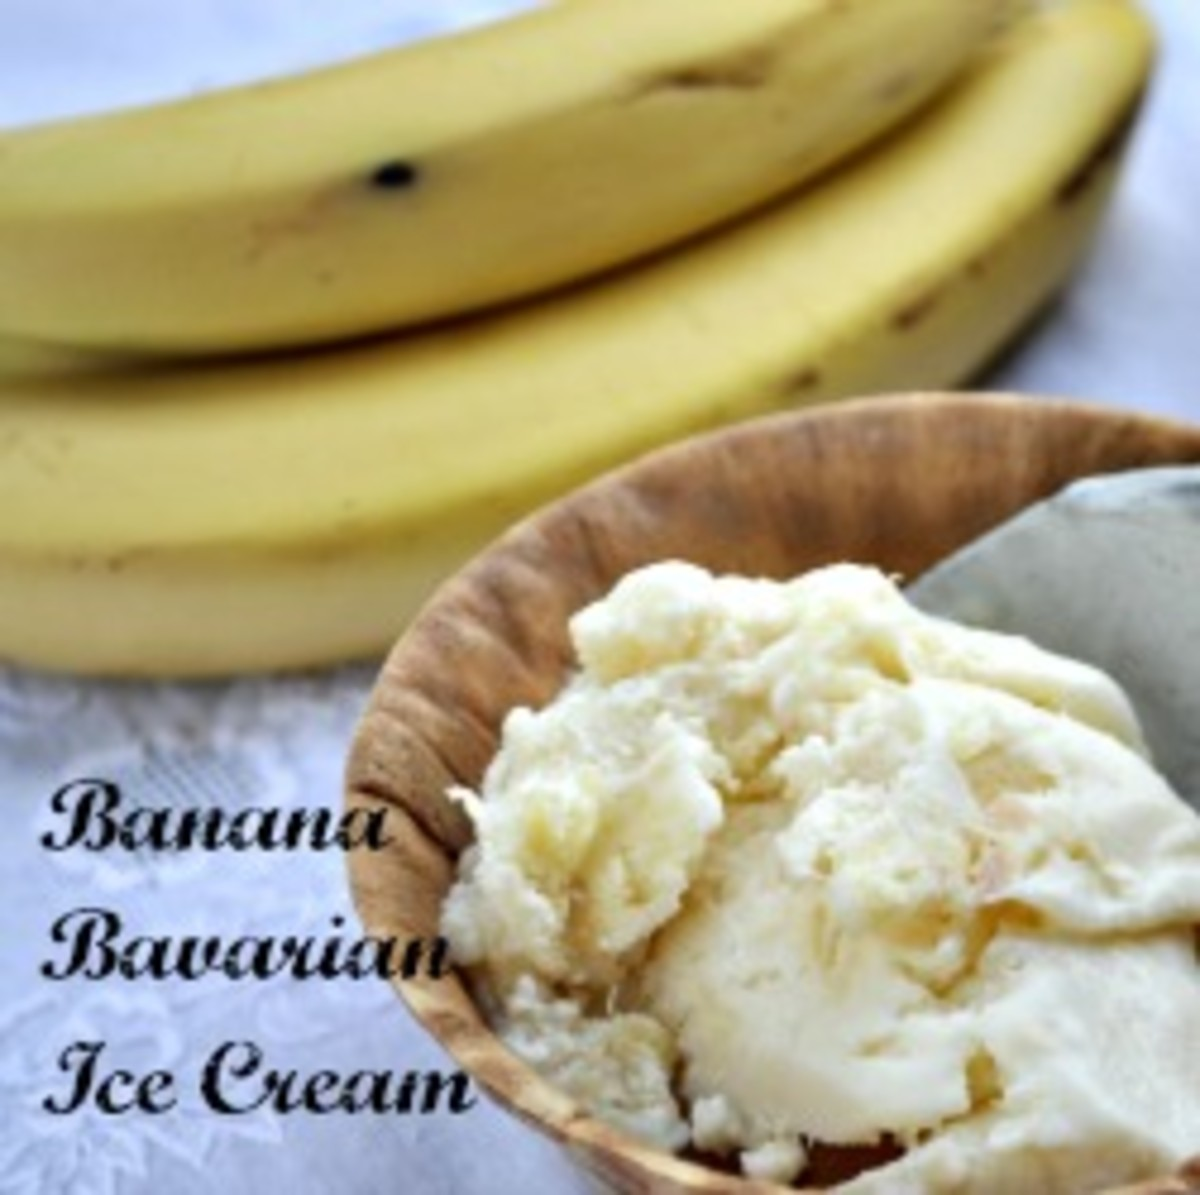 Homemade Ice Cream - Banana Bavarian Ice Cream